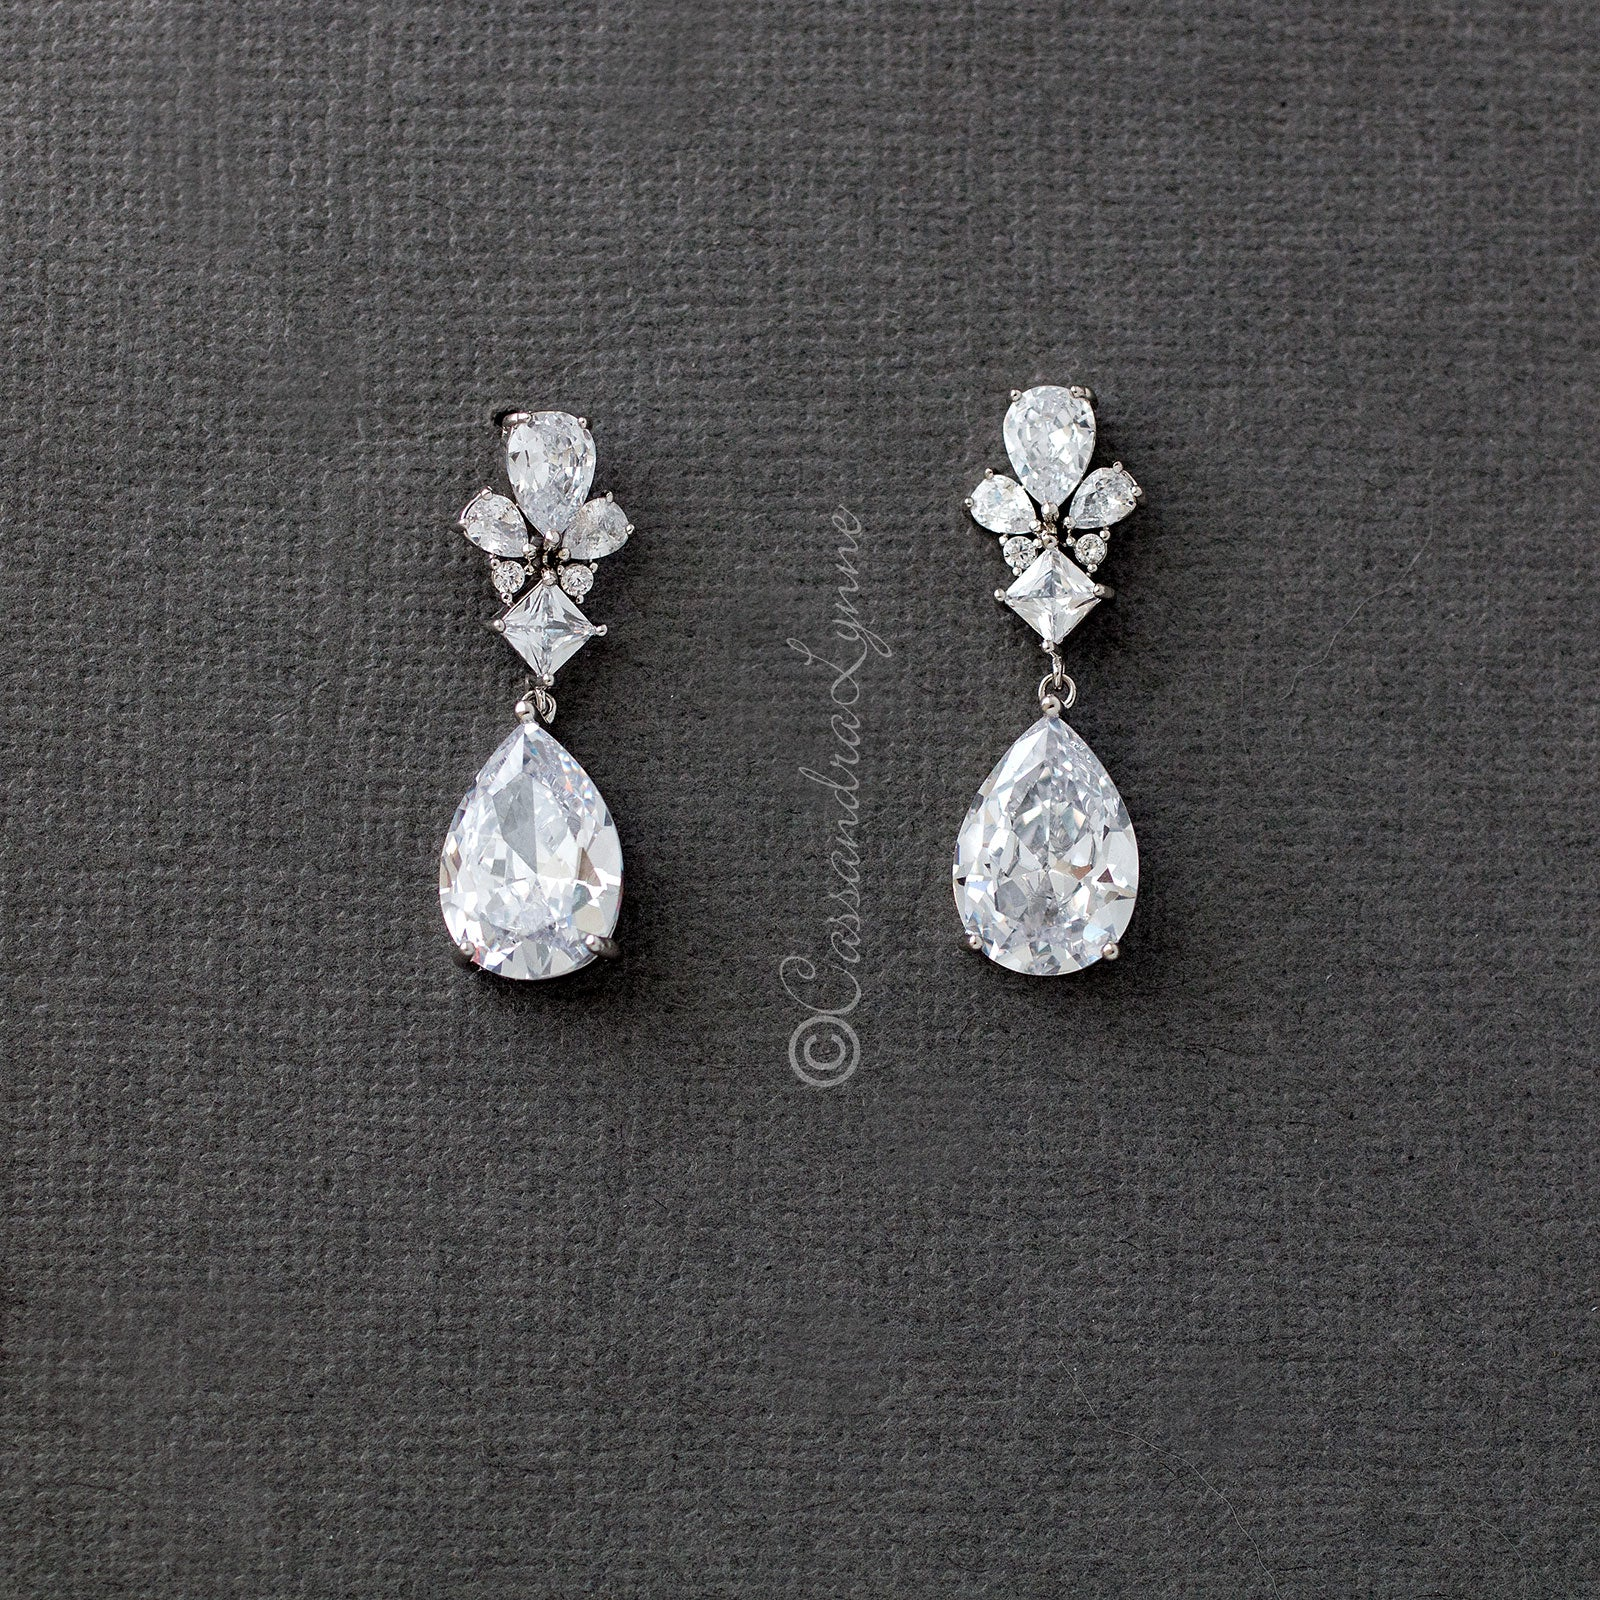 Bridal Earrings with Pear Cubic Zirconia